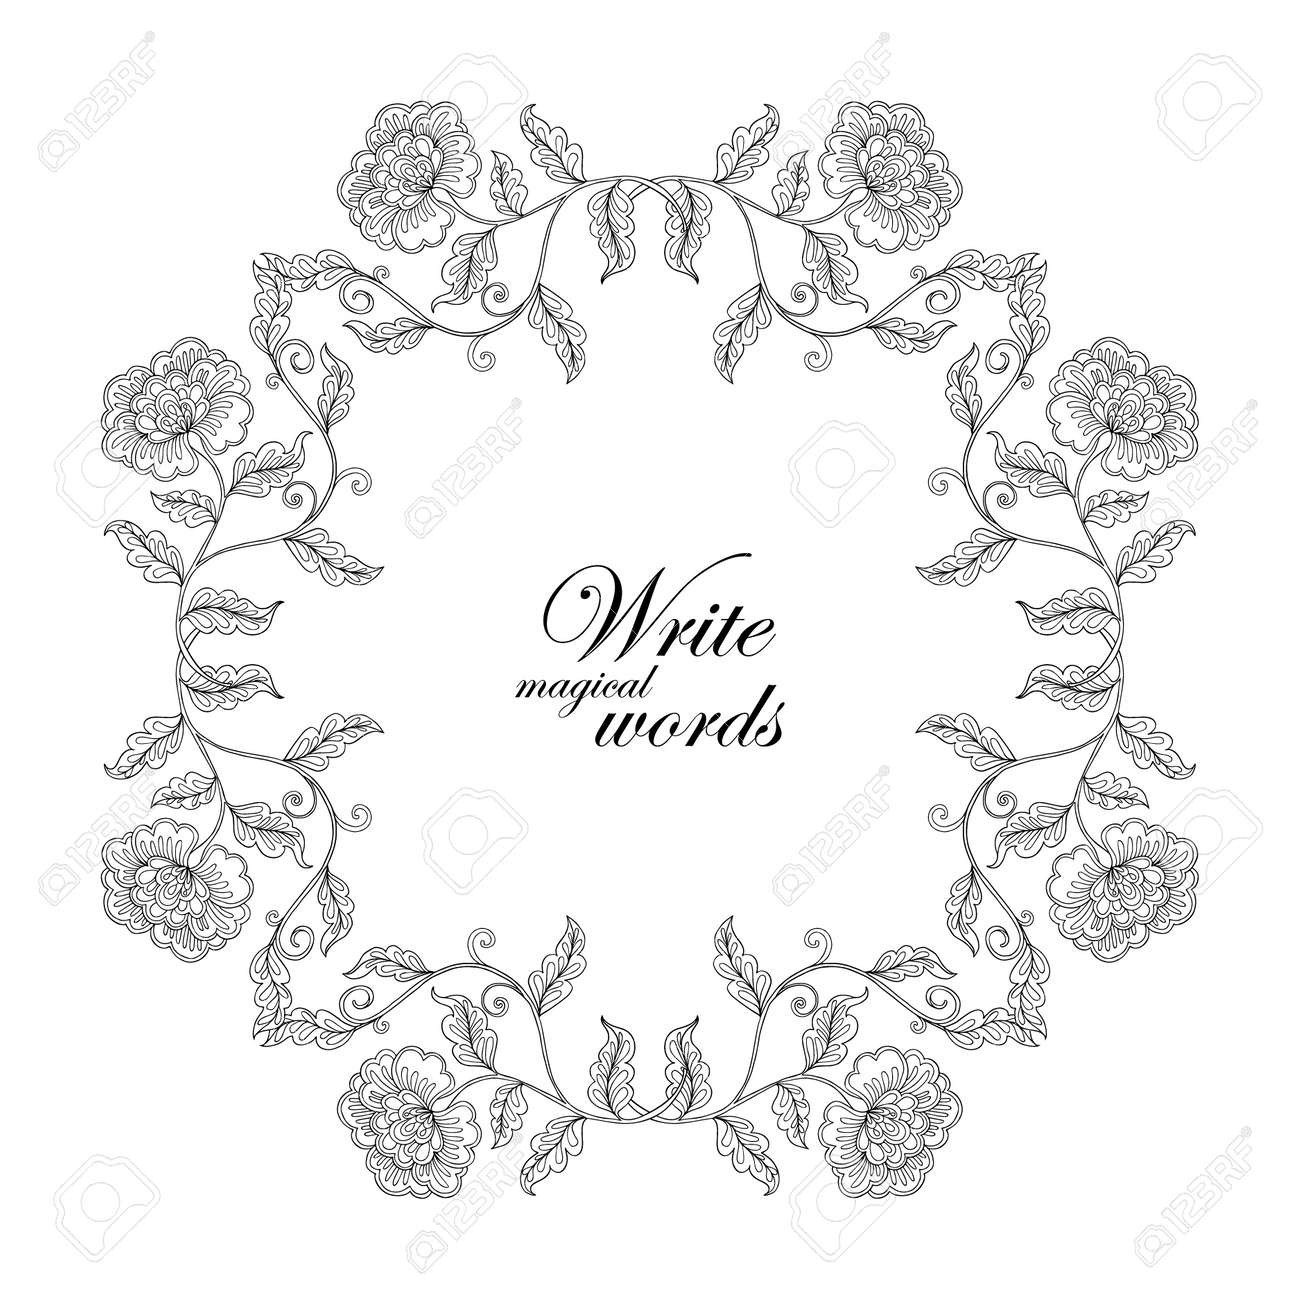 Decorative Vintage Flowers Frame Border With Space For Any Text Royalty Free Cliparts Vectors And Stock Illustration Image 57533771